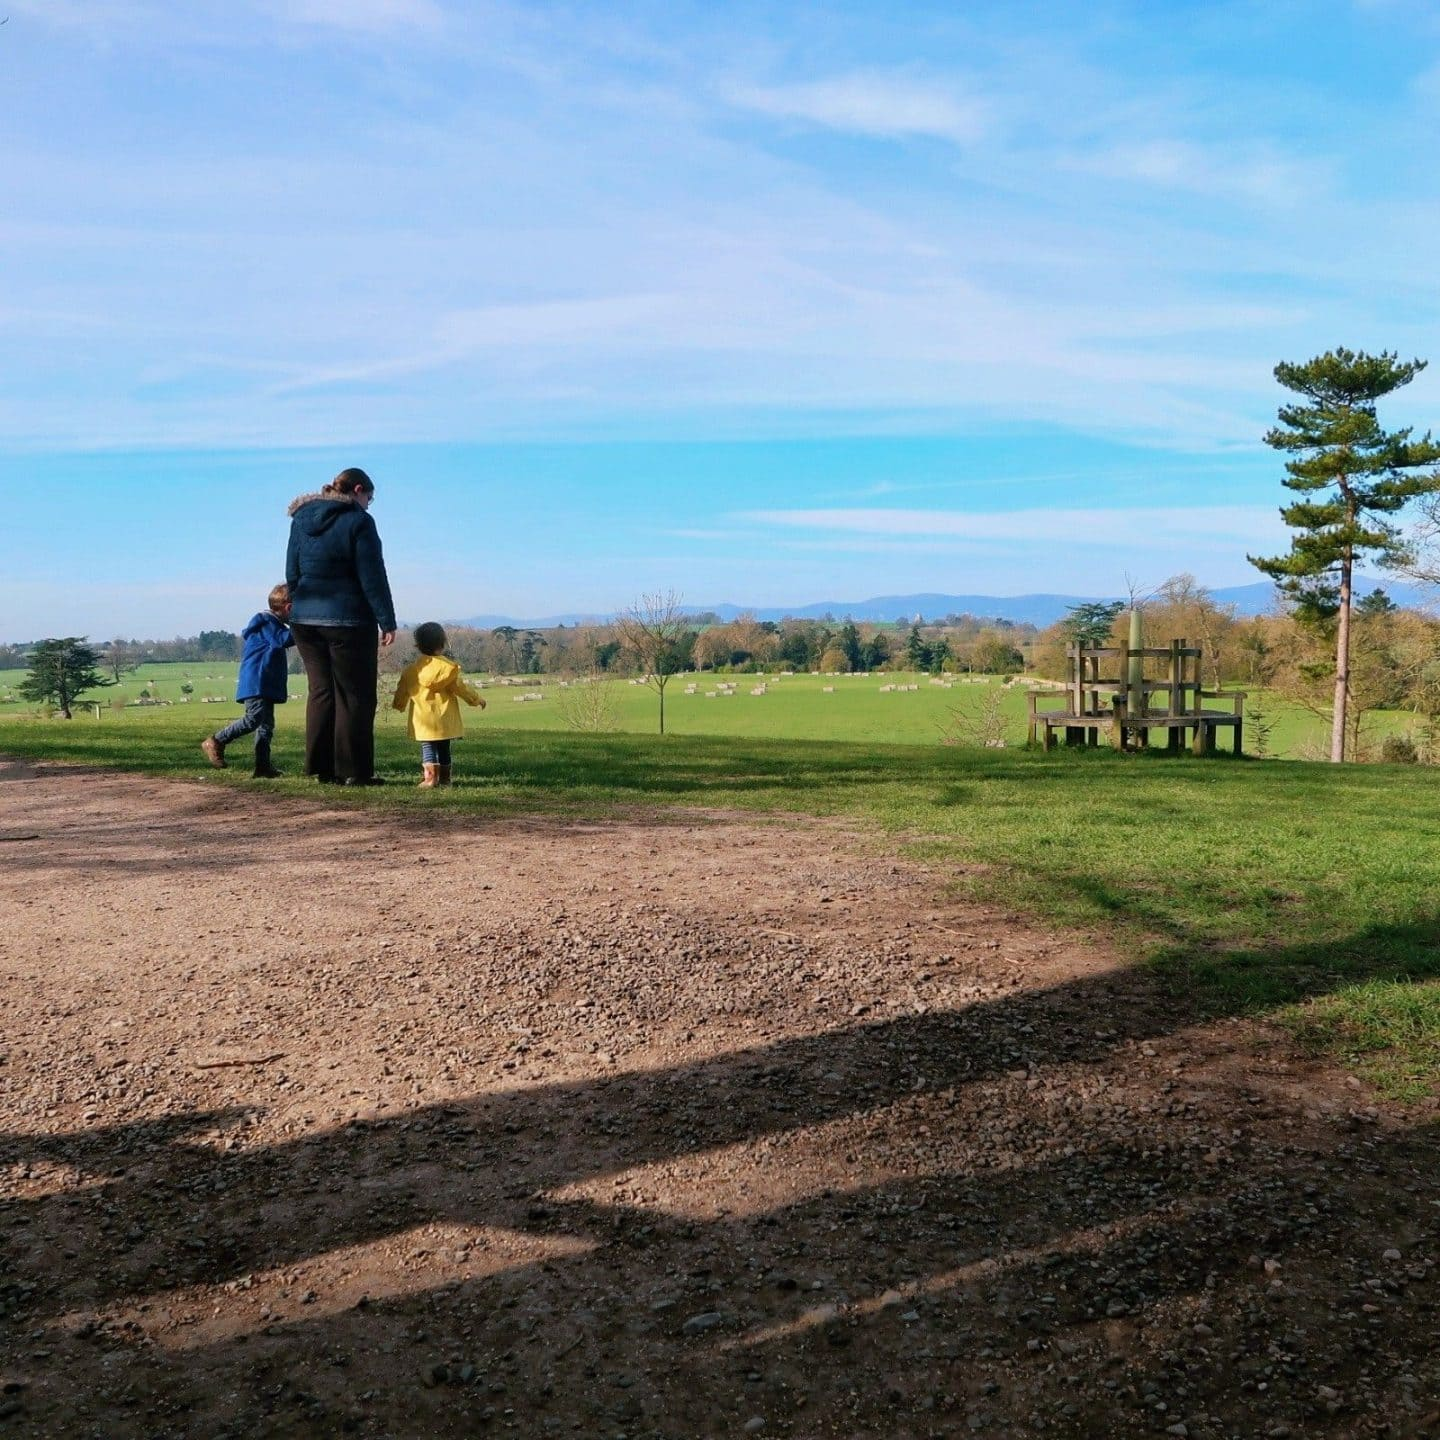 Me and my son and daughter at Croome